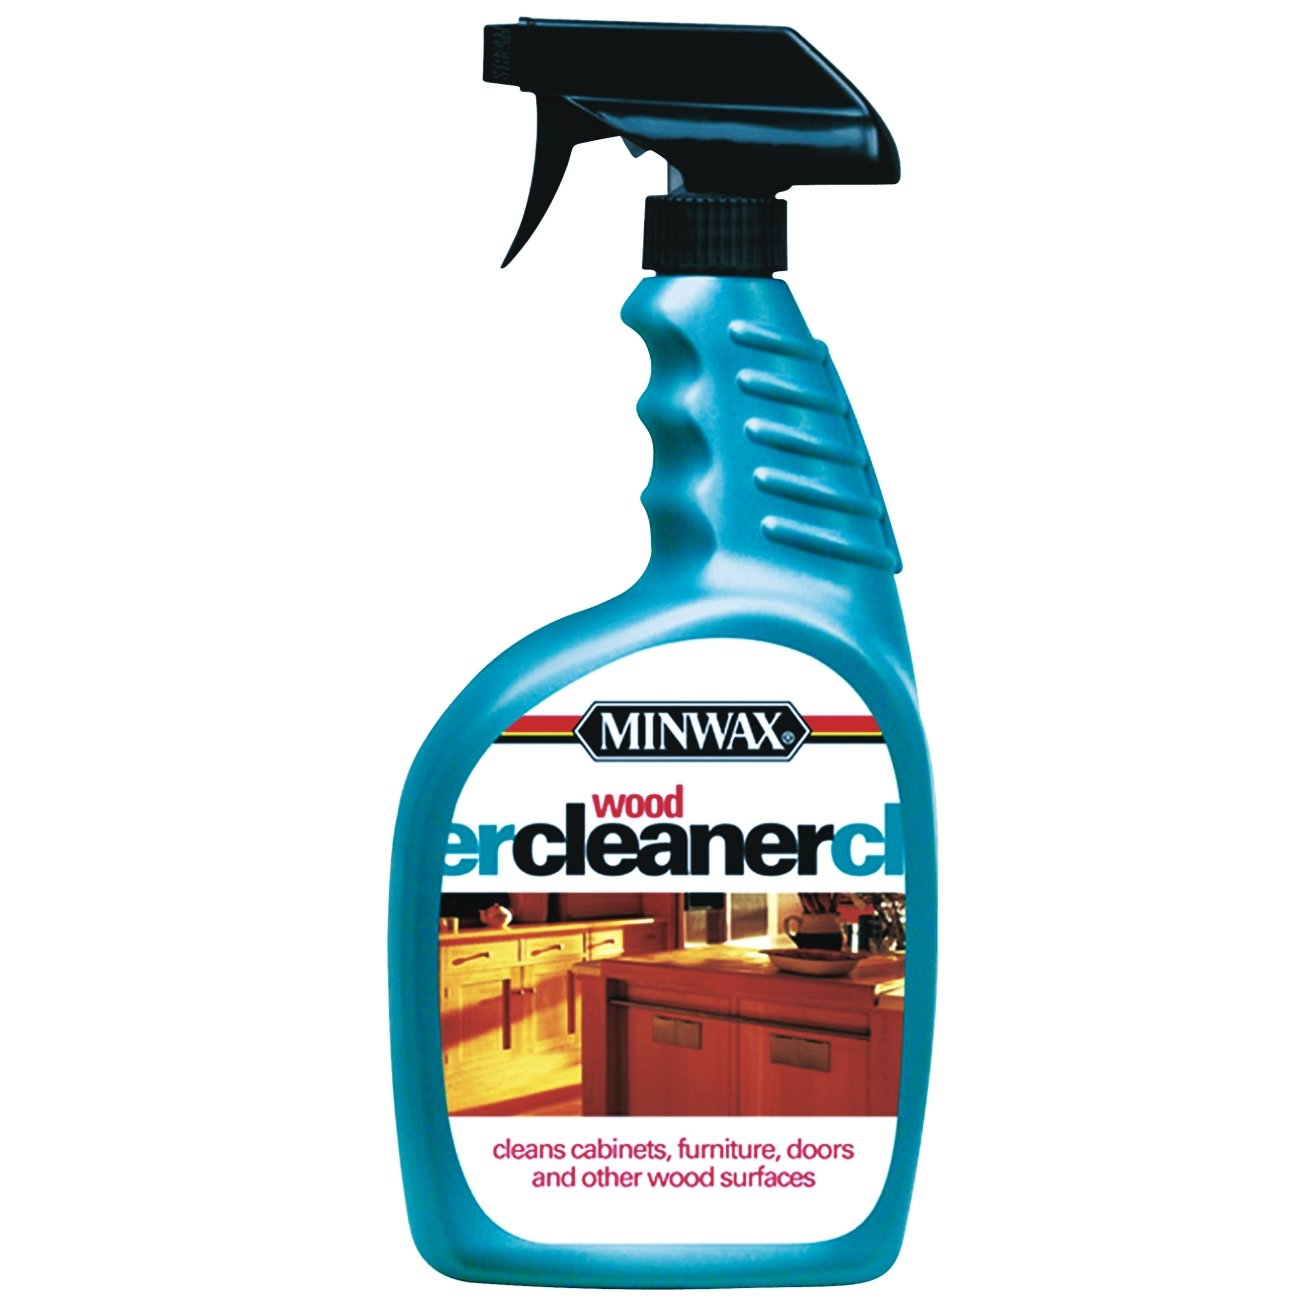 Cabinet Magic Cleaner Amazoncom Minwax 521270004 Wood Cabinet Cleaner 32oz Home